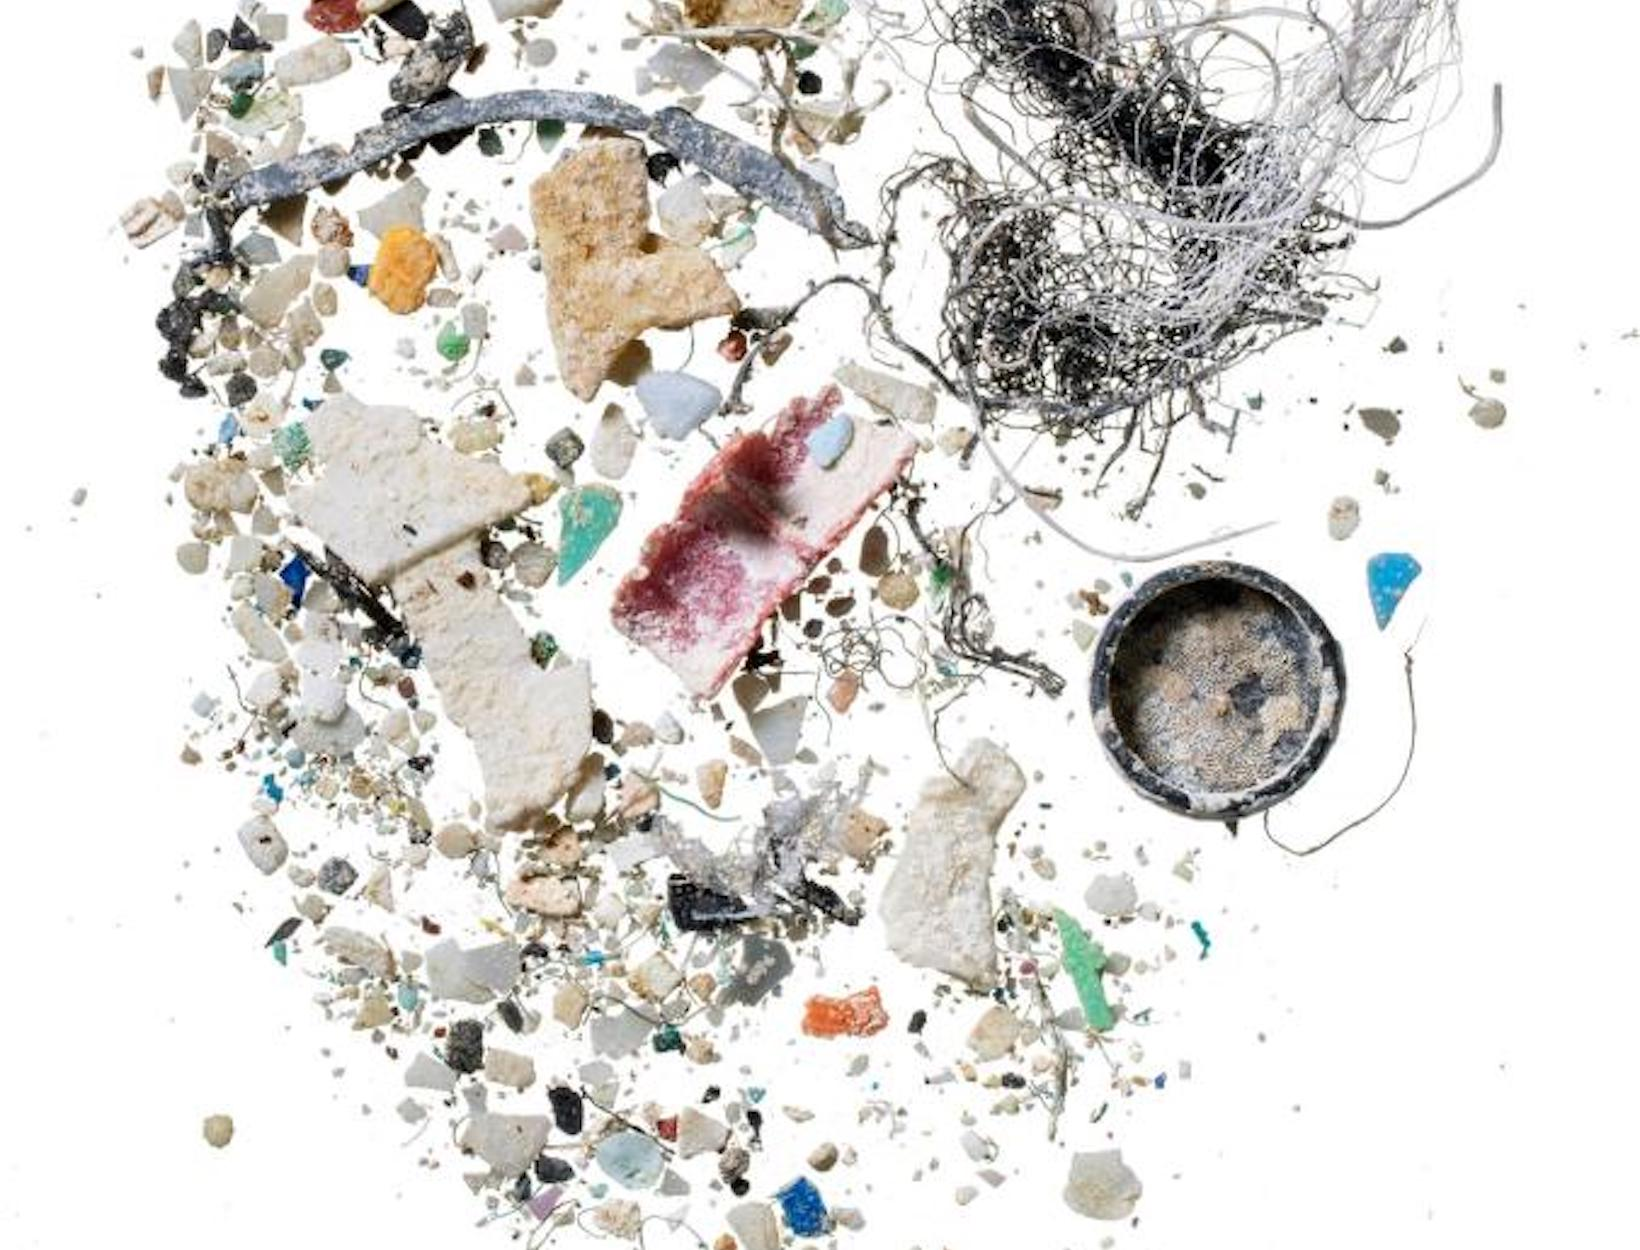 These Tiny Fish Reveal Our Oceans' Biggest Problem: Plastic